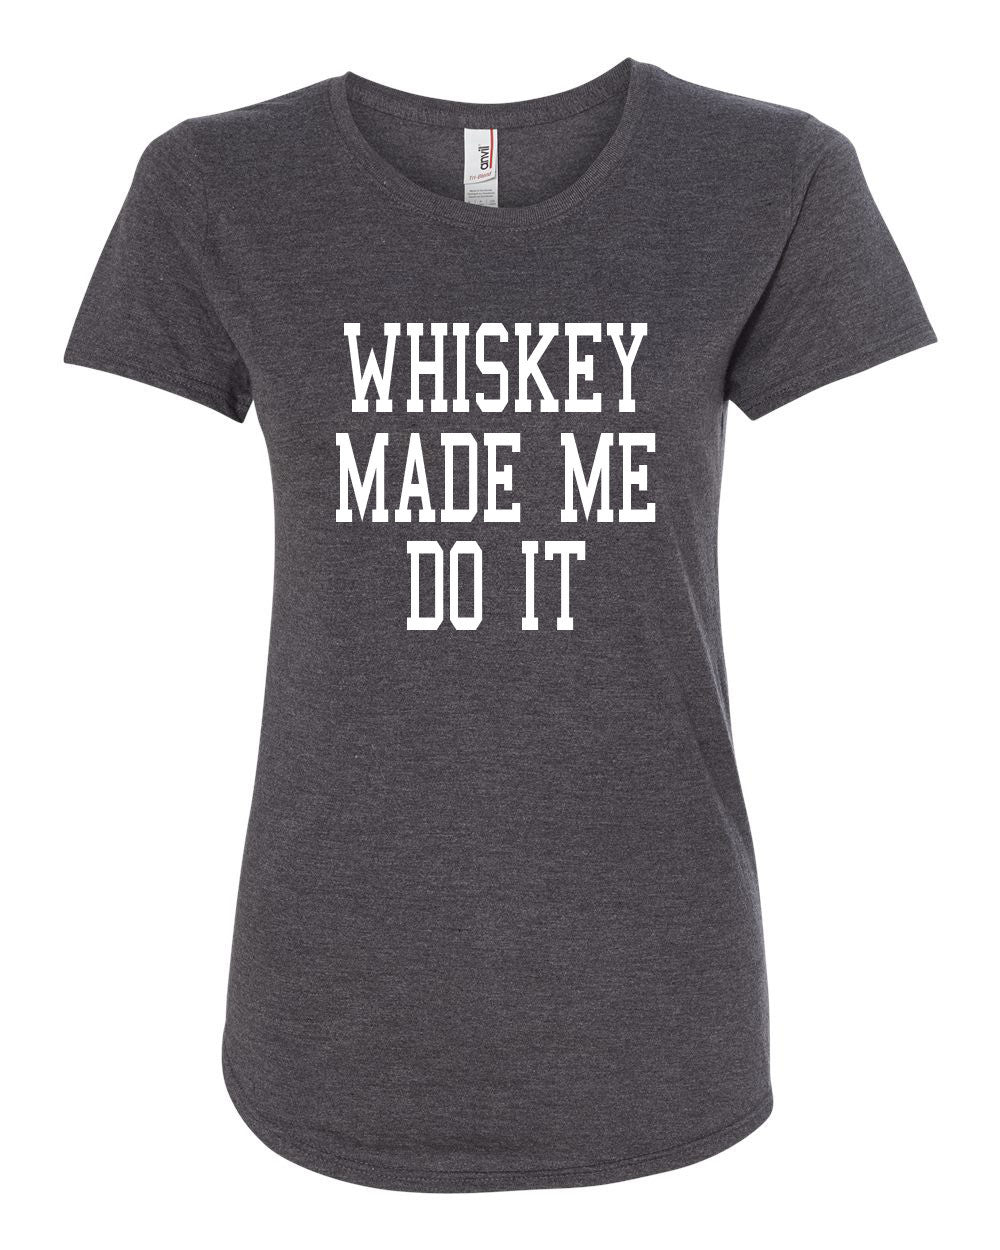 Whiskey Made Me Do It Women's T-shirt